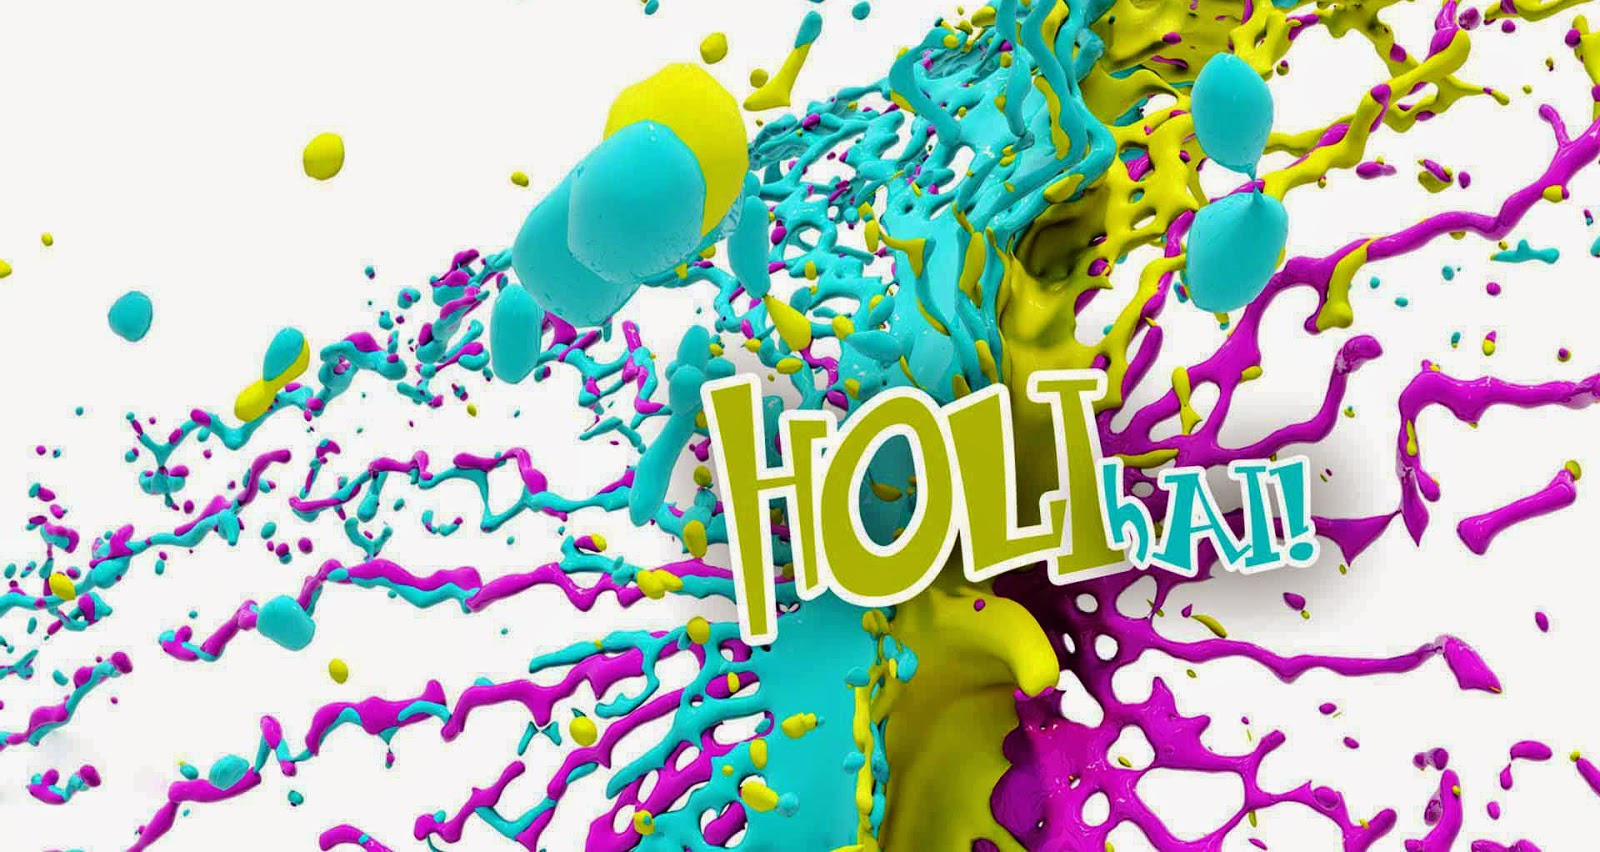 Top Holi Wallpapers 2015